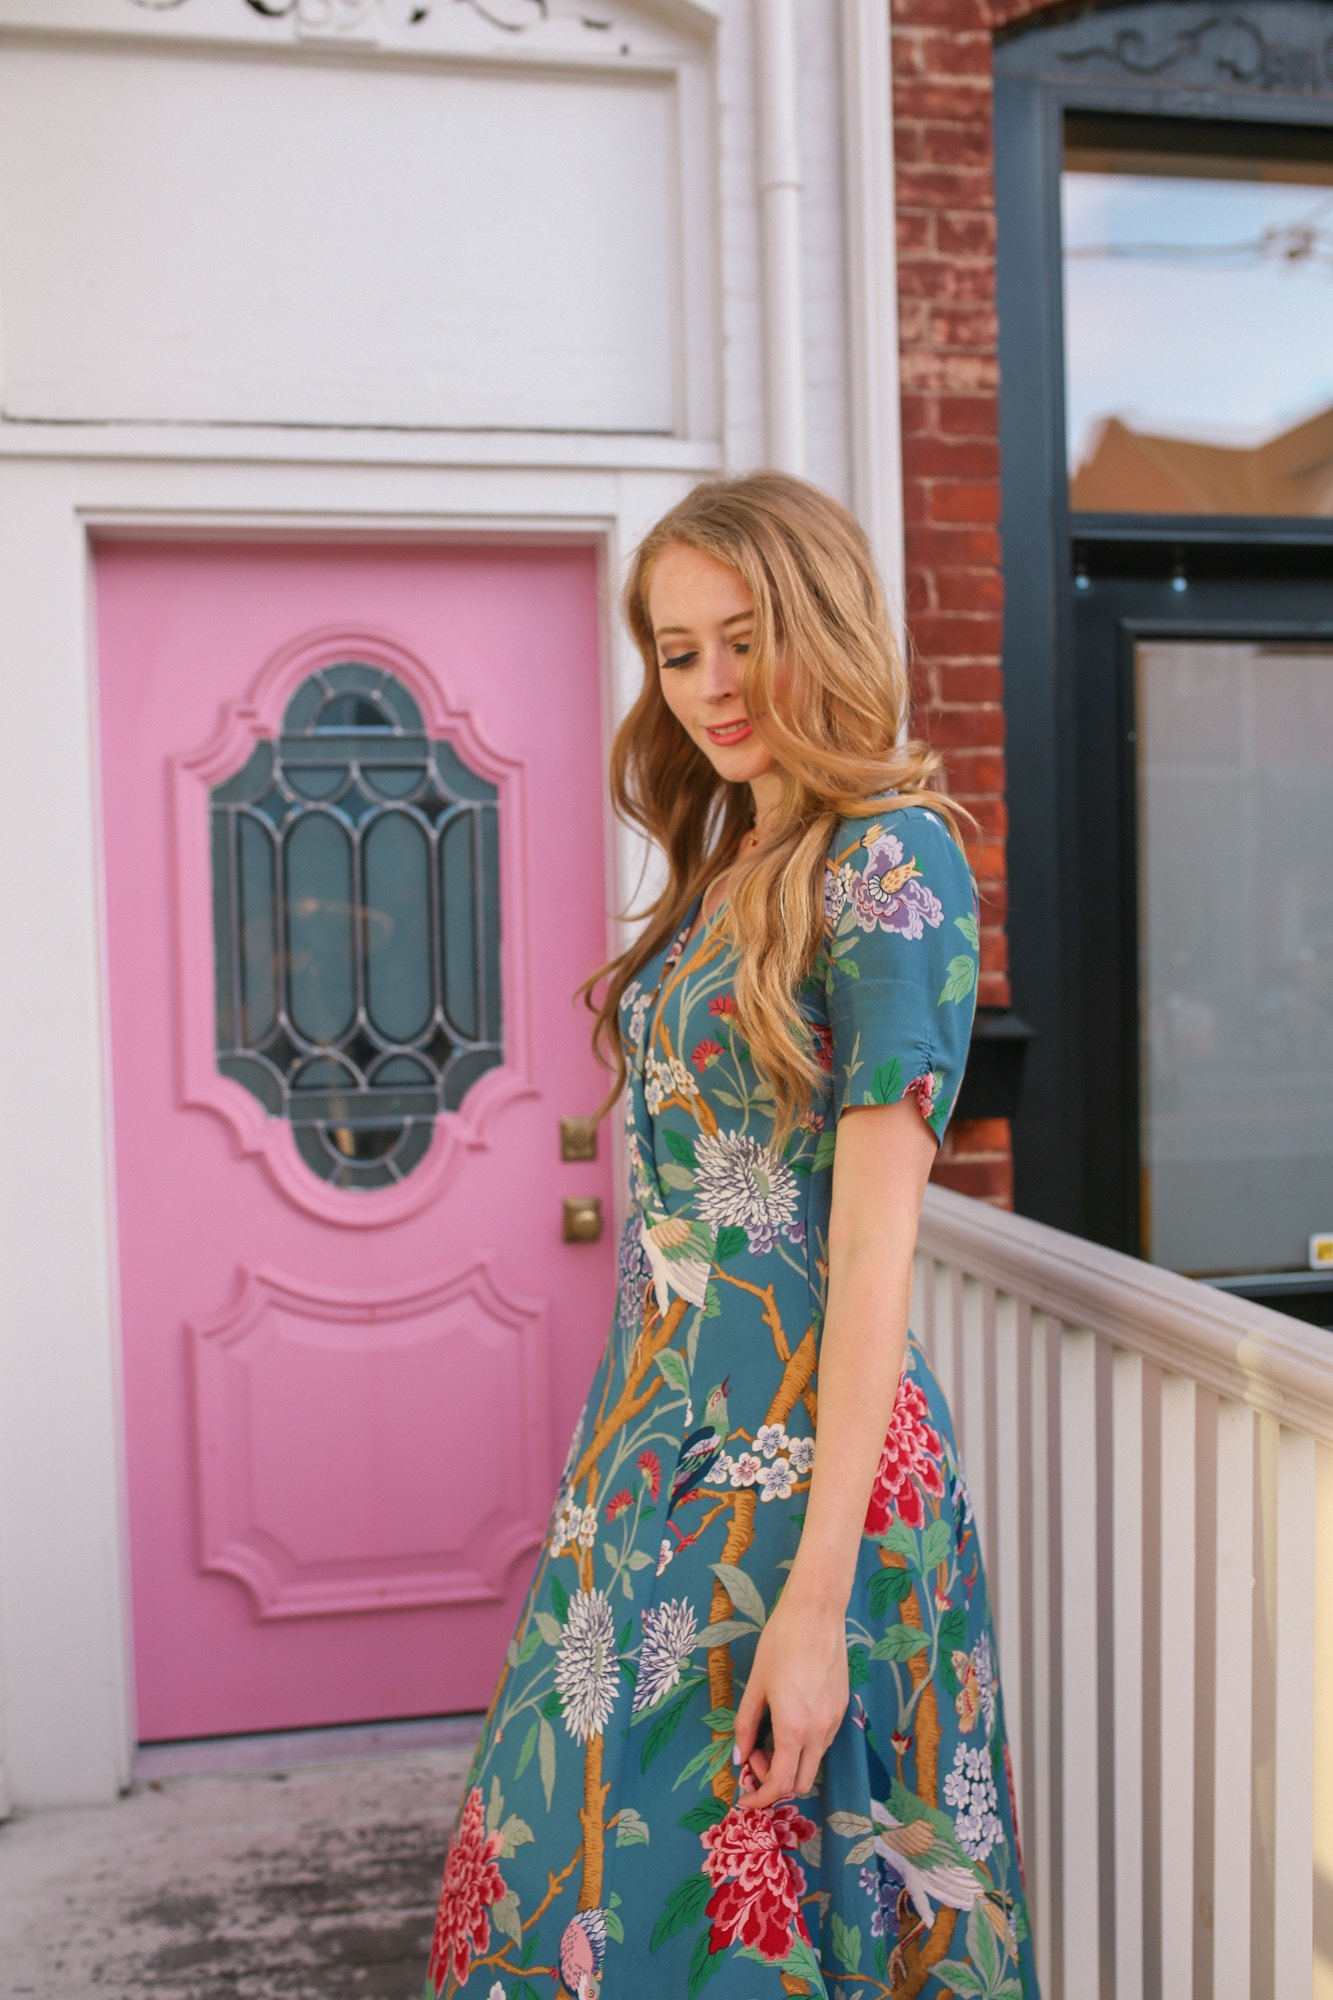 Wearing a GP & J Baker dress in blue. This gorgeous dress inspired by wallpaper prints is perfect for dinner dates or even a casual wedding.